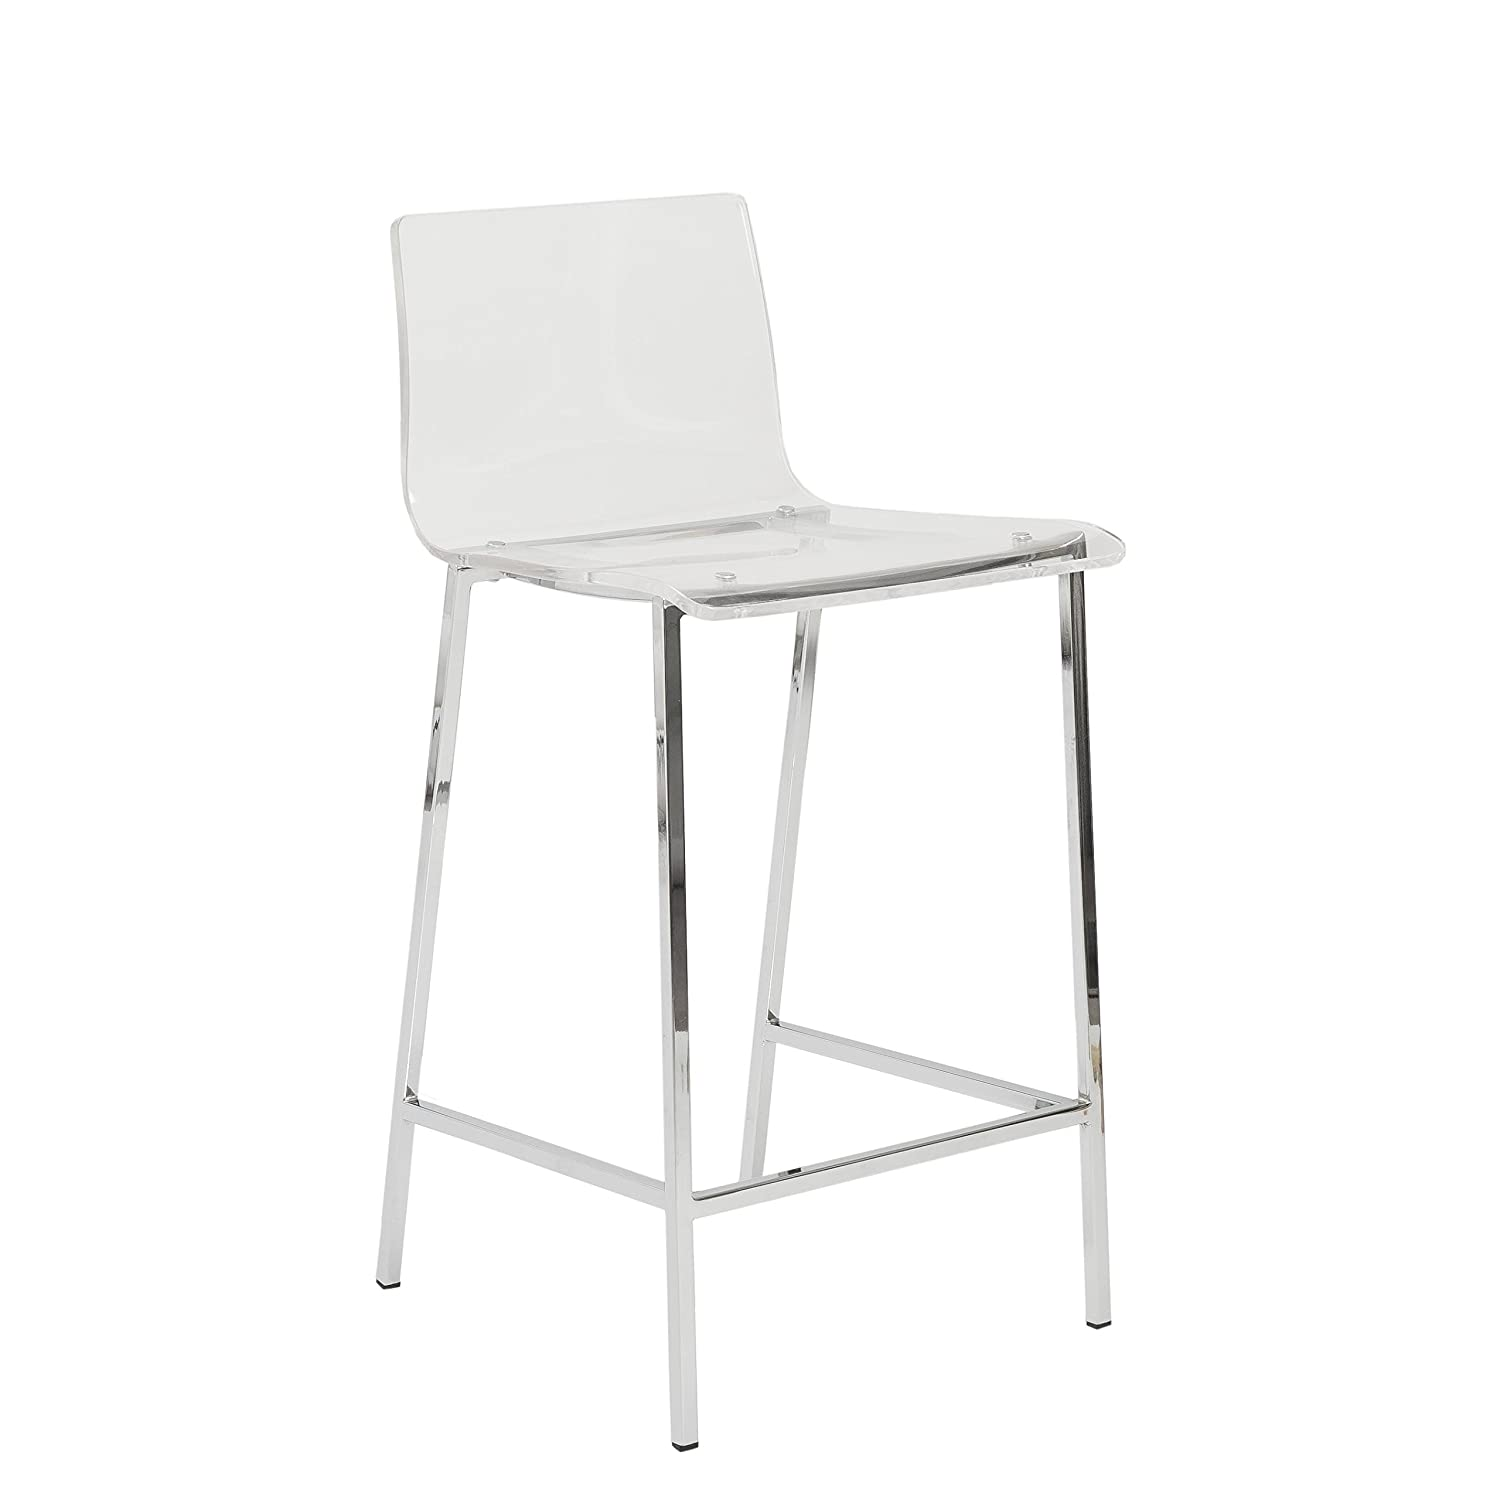 Acrylic Counter Height Stools Part - 48: Amazon.com: Euro Style Chloe Clear Acrylic Counter Height Stool With  Chromed Base, Set Of 2: Kitchen U0026 Dining